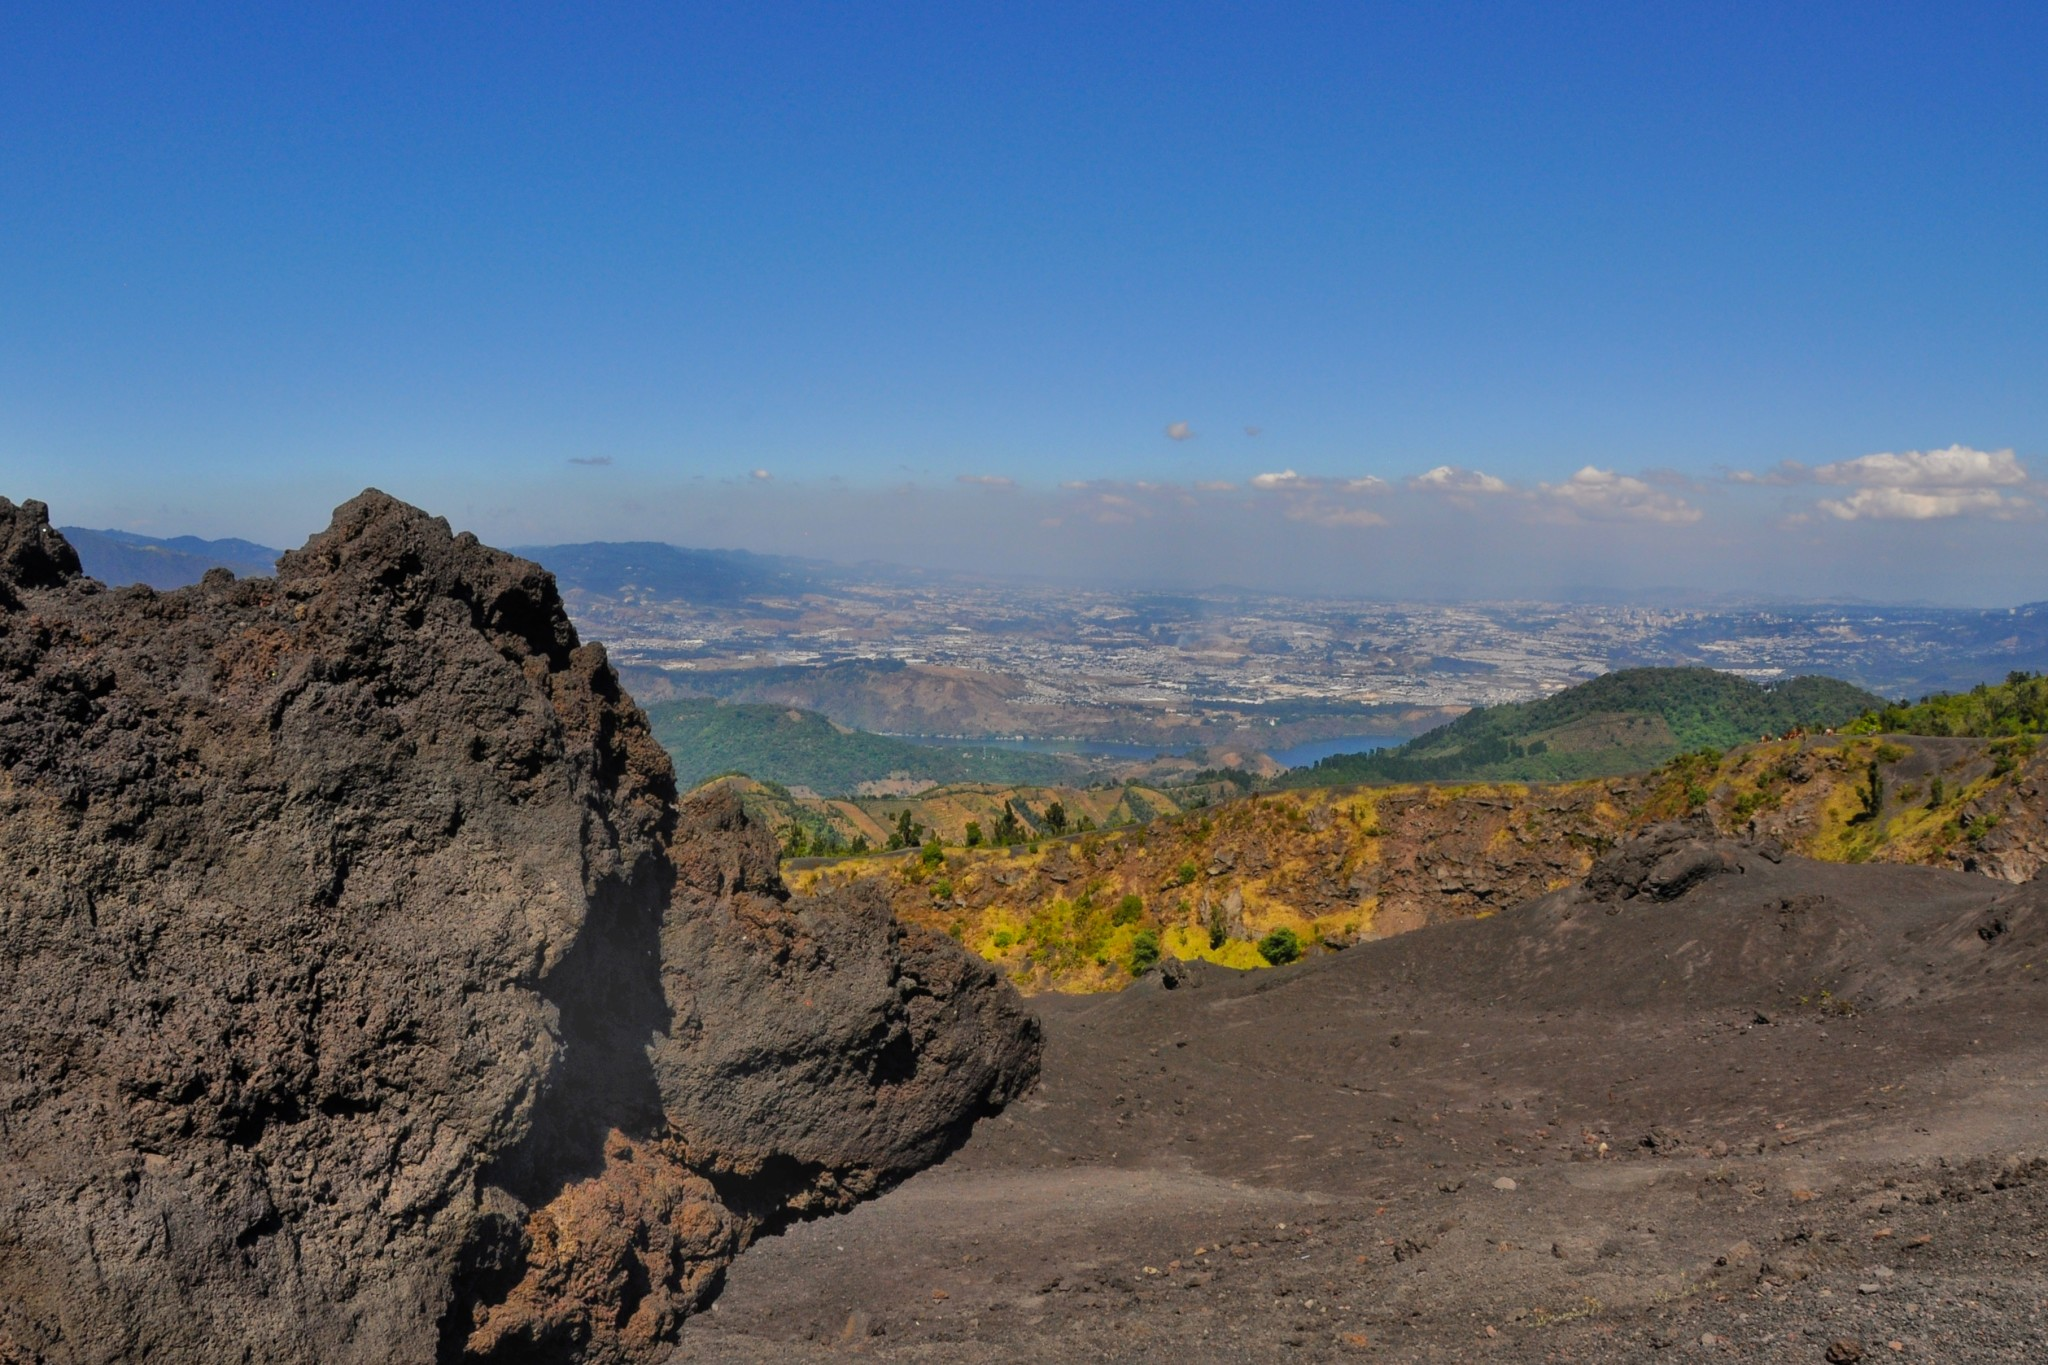 View of Guatemala city atop Pacaya volcano